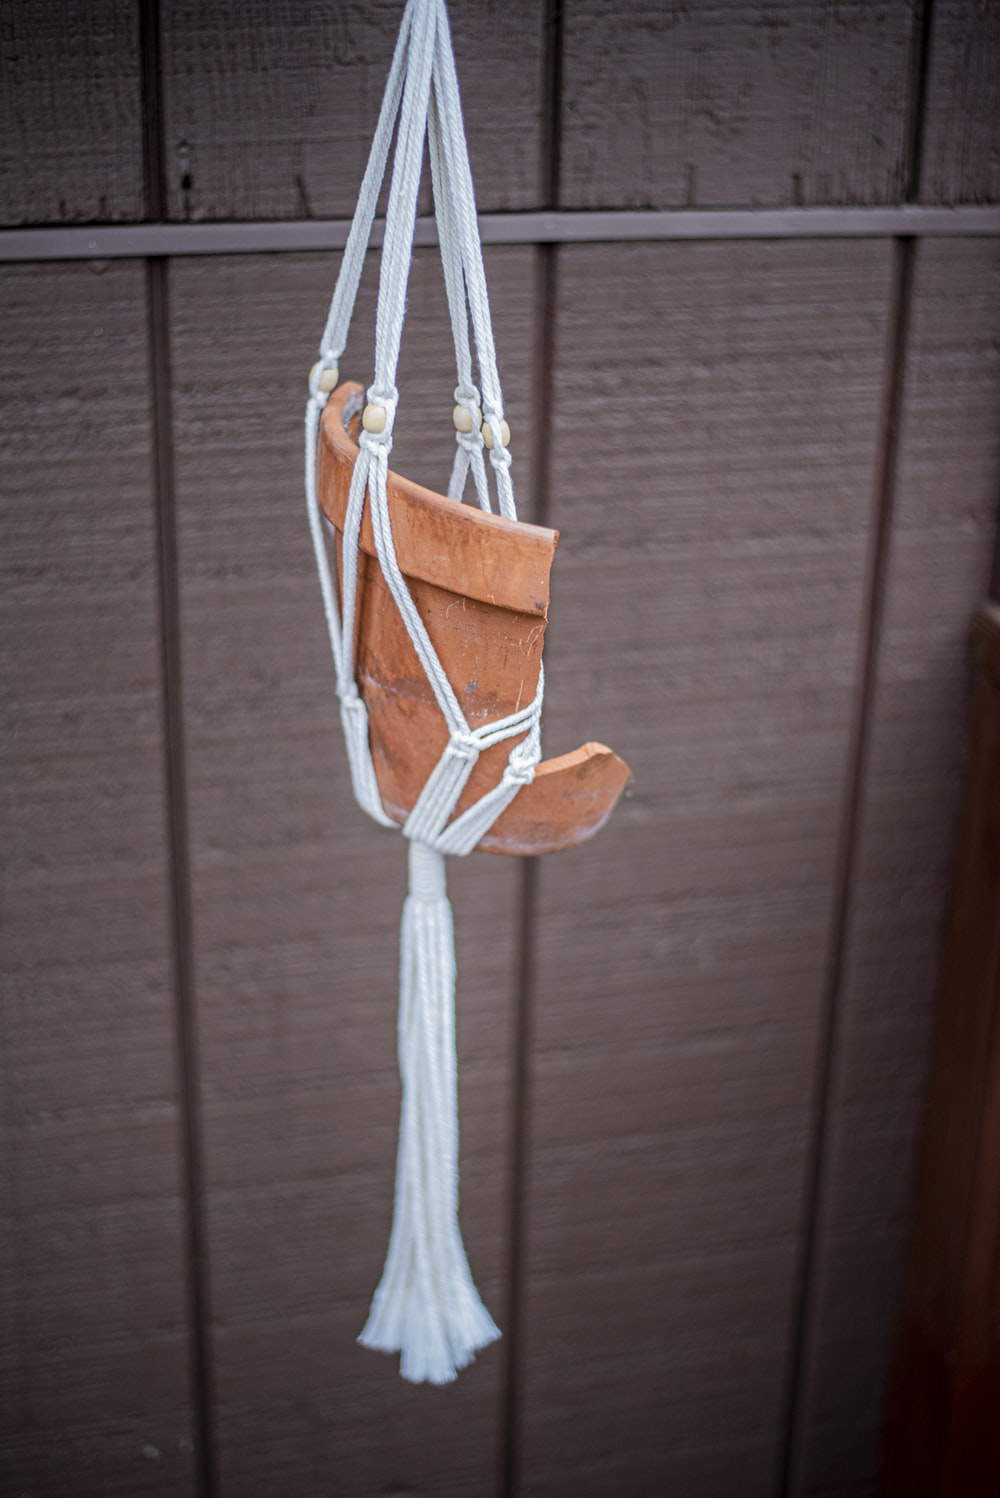 brown and white rope hanged on brown wooden wall